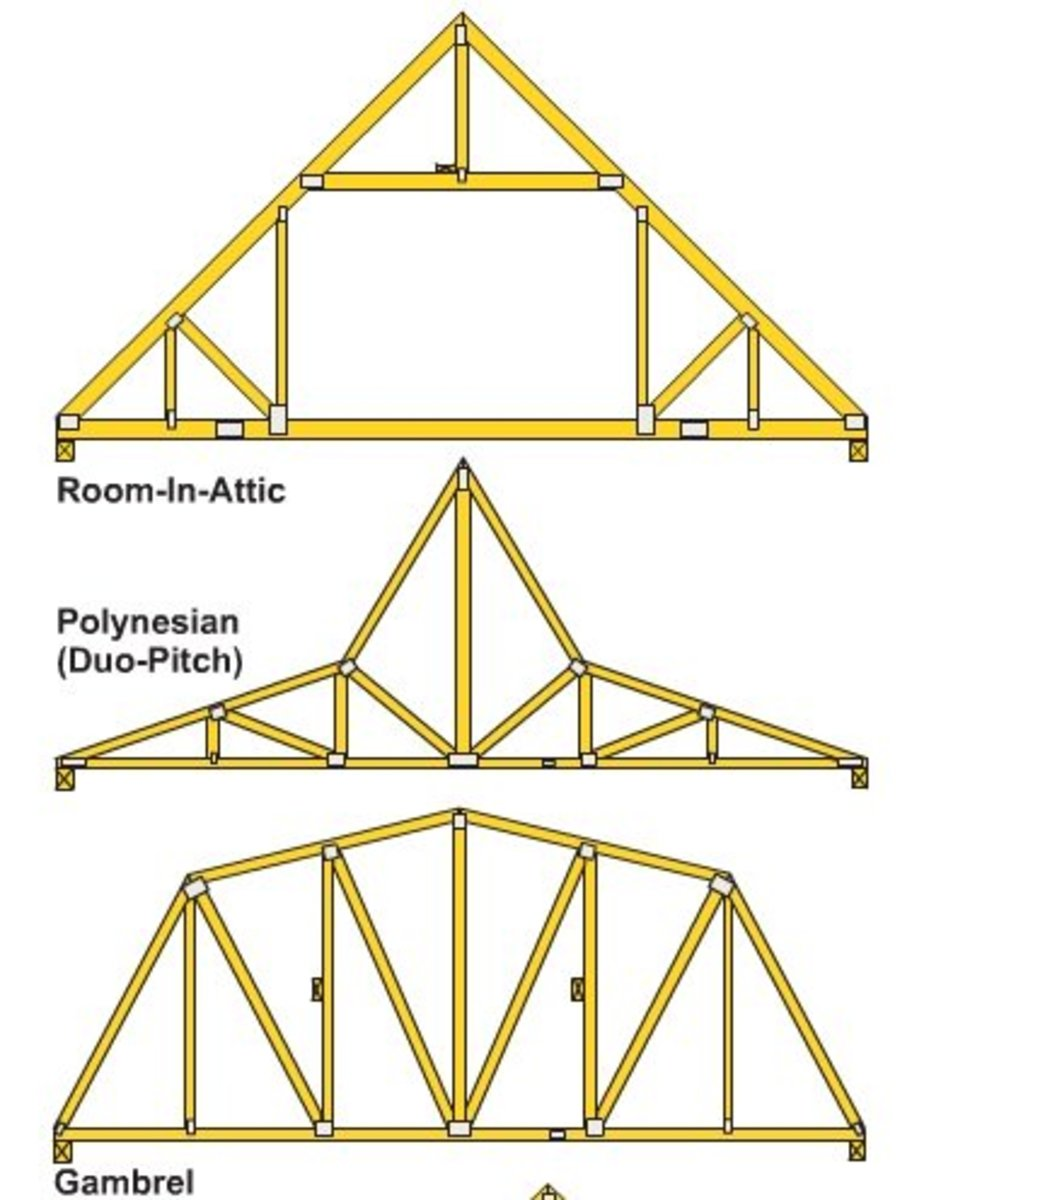 How to build wooden roof trusses dengarden for Building your own roof trusses